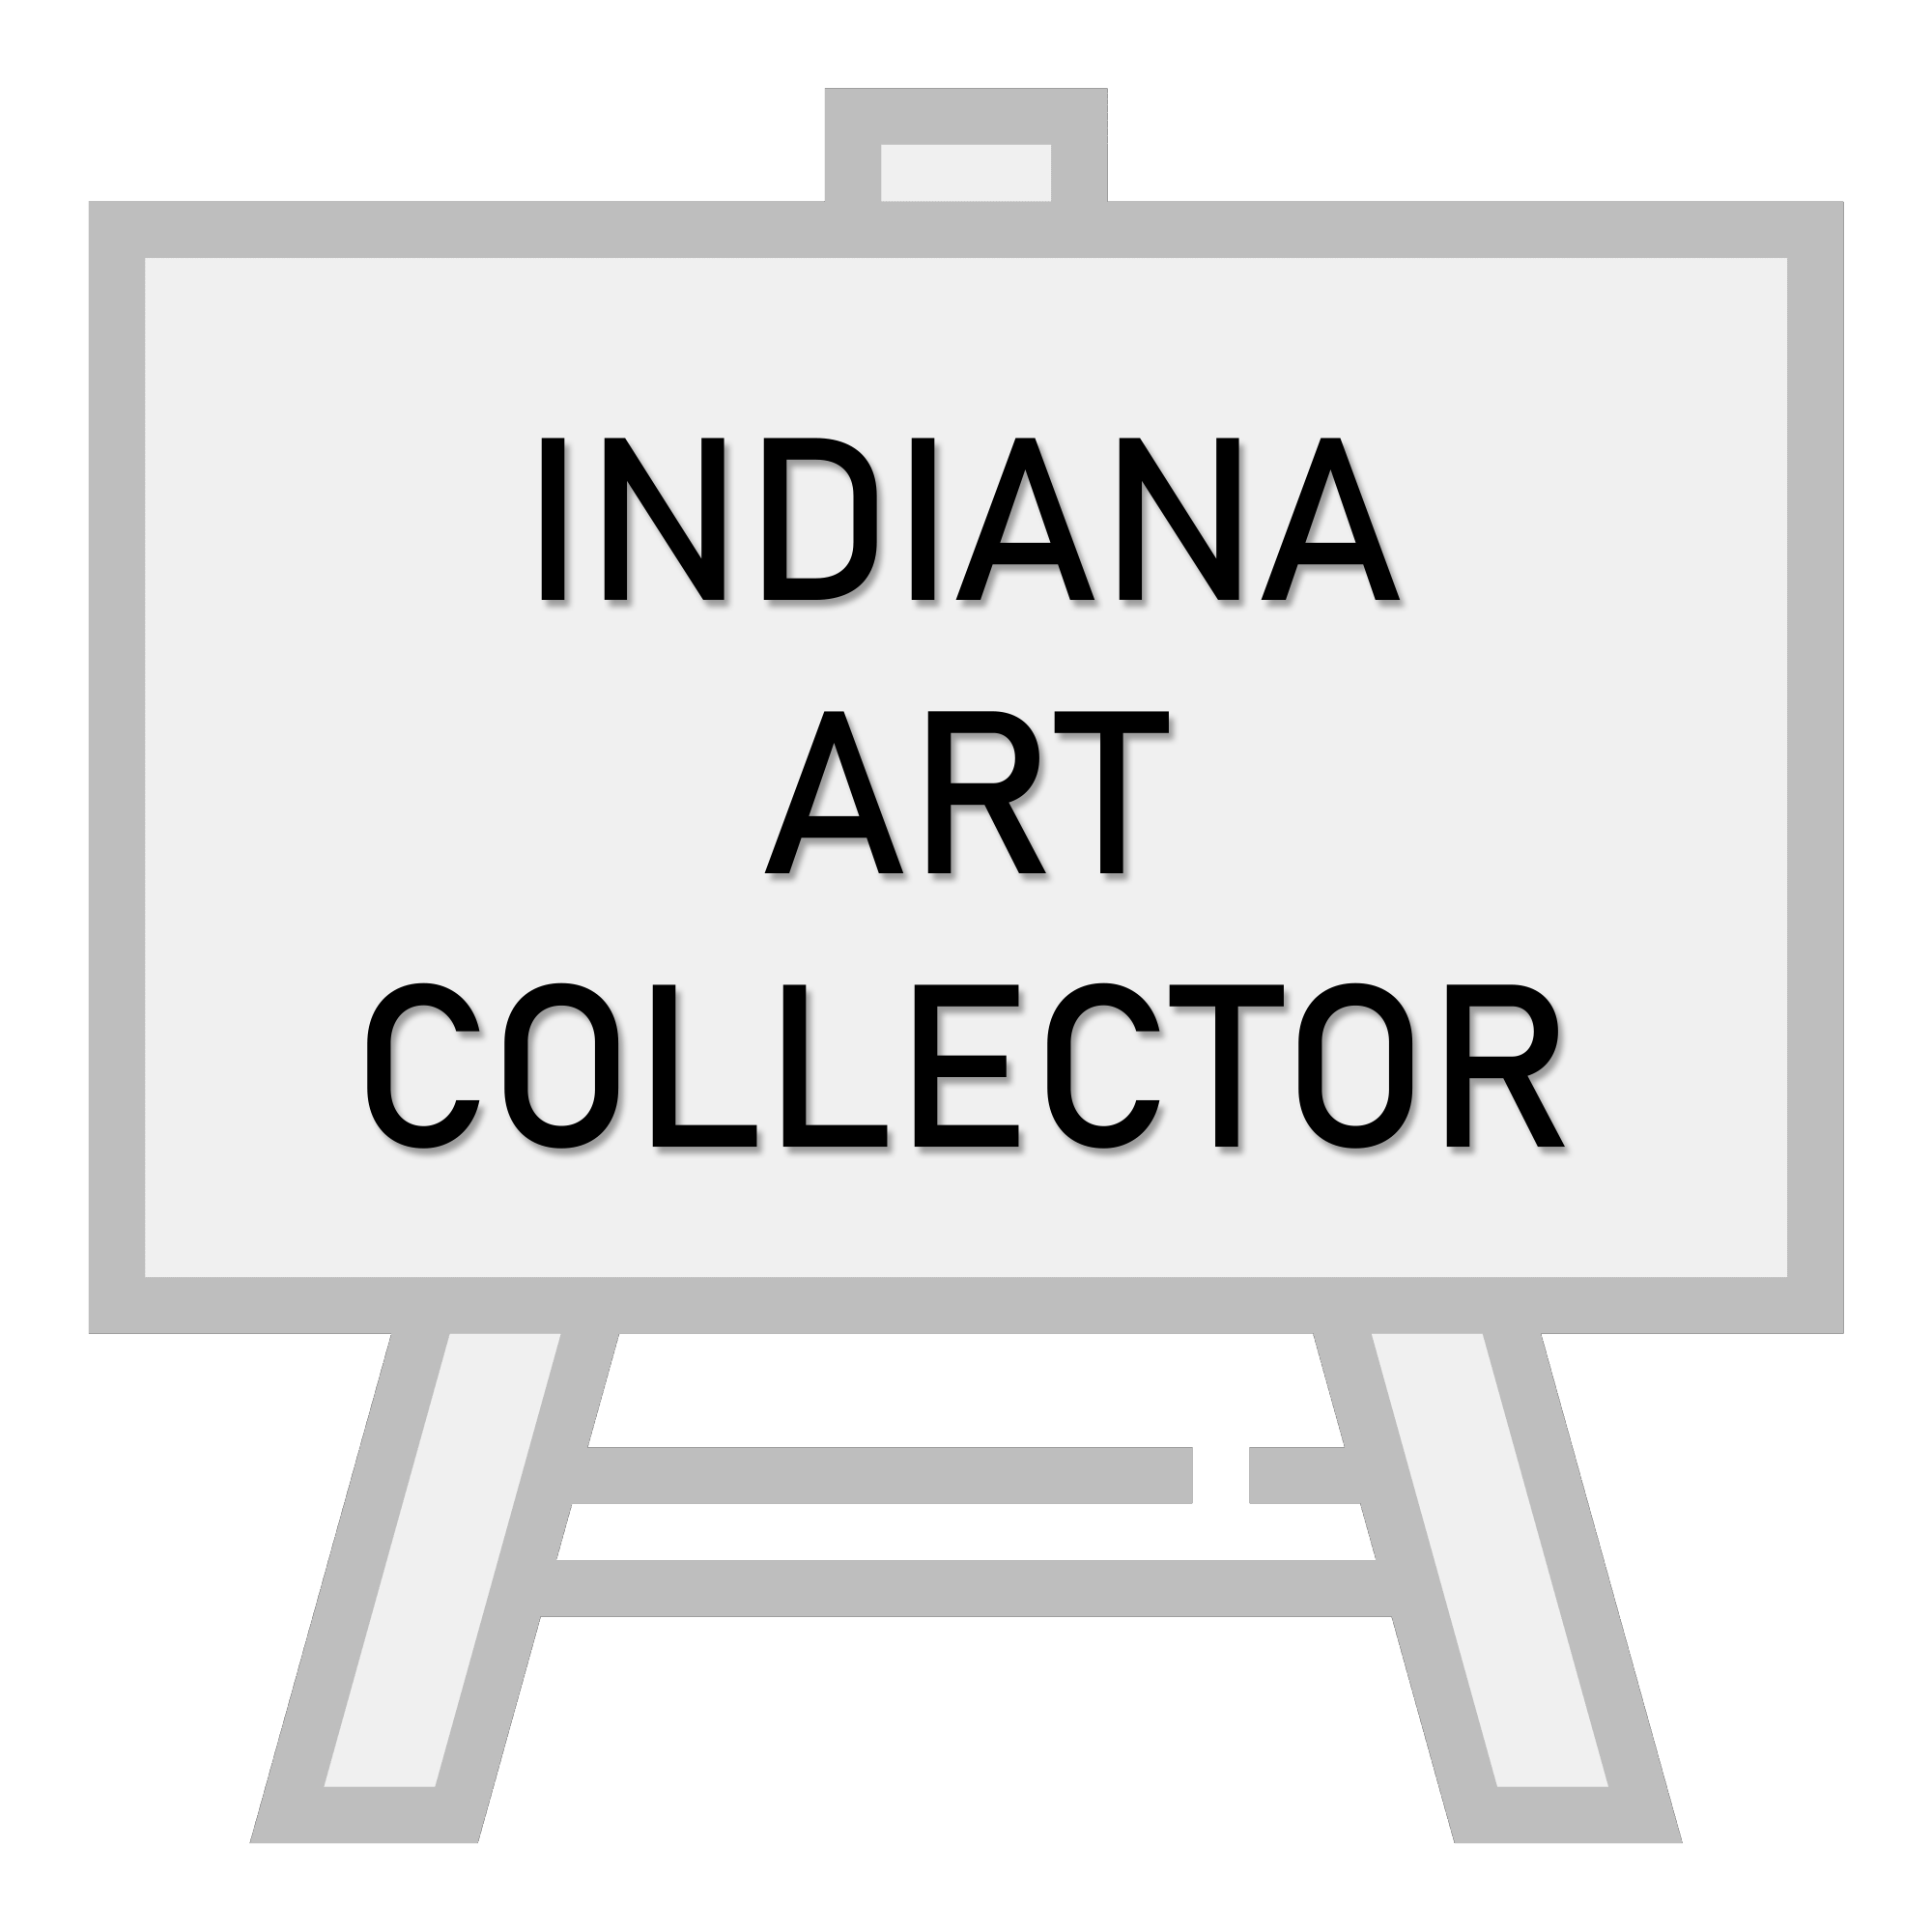 Indiana Art Collector - High Quality Logo